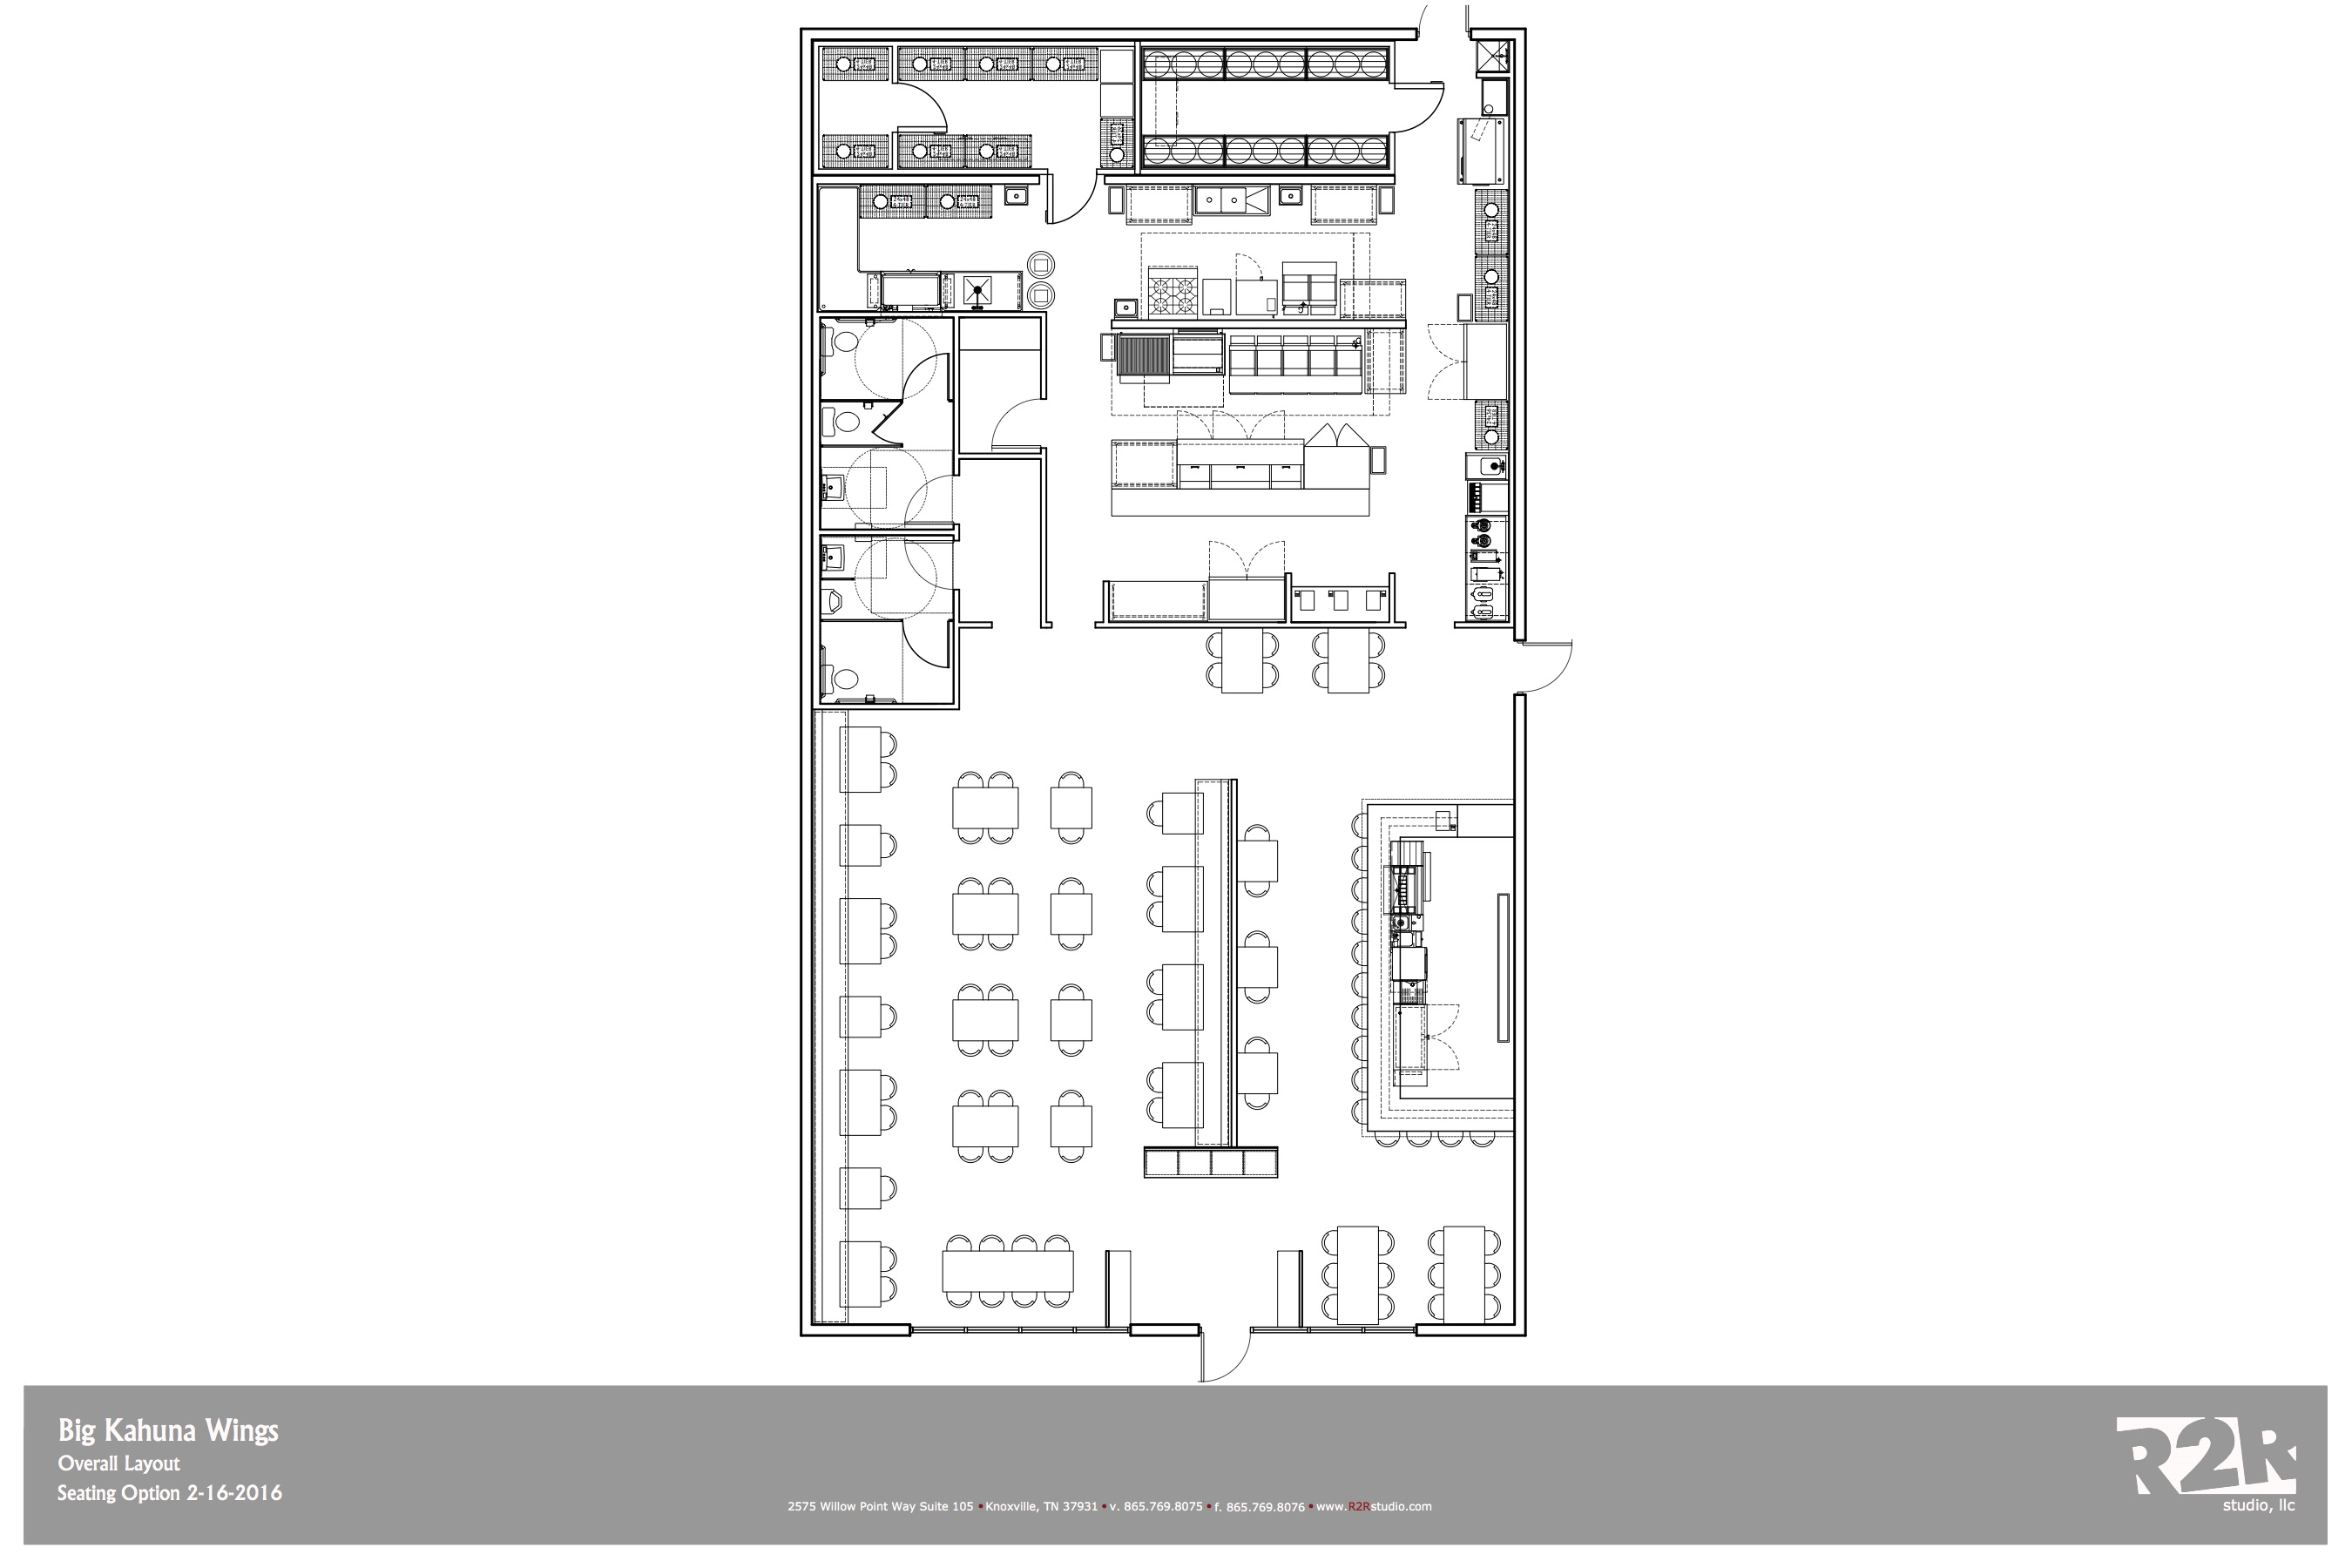 BKW_FloorPlan1_2-16-16 (002) (1)